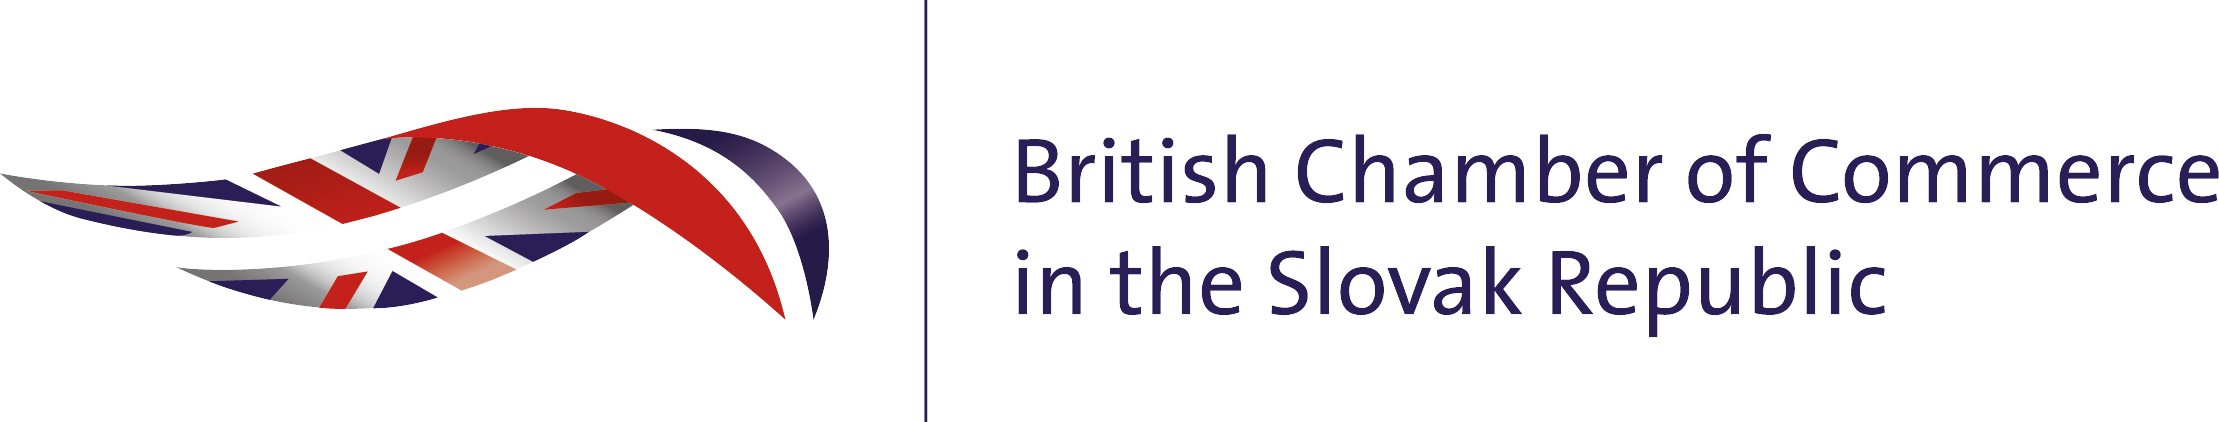 British Chamber of Commerce in the Slovak Republic